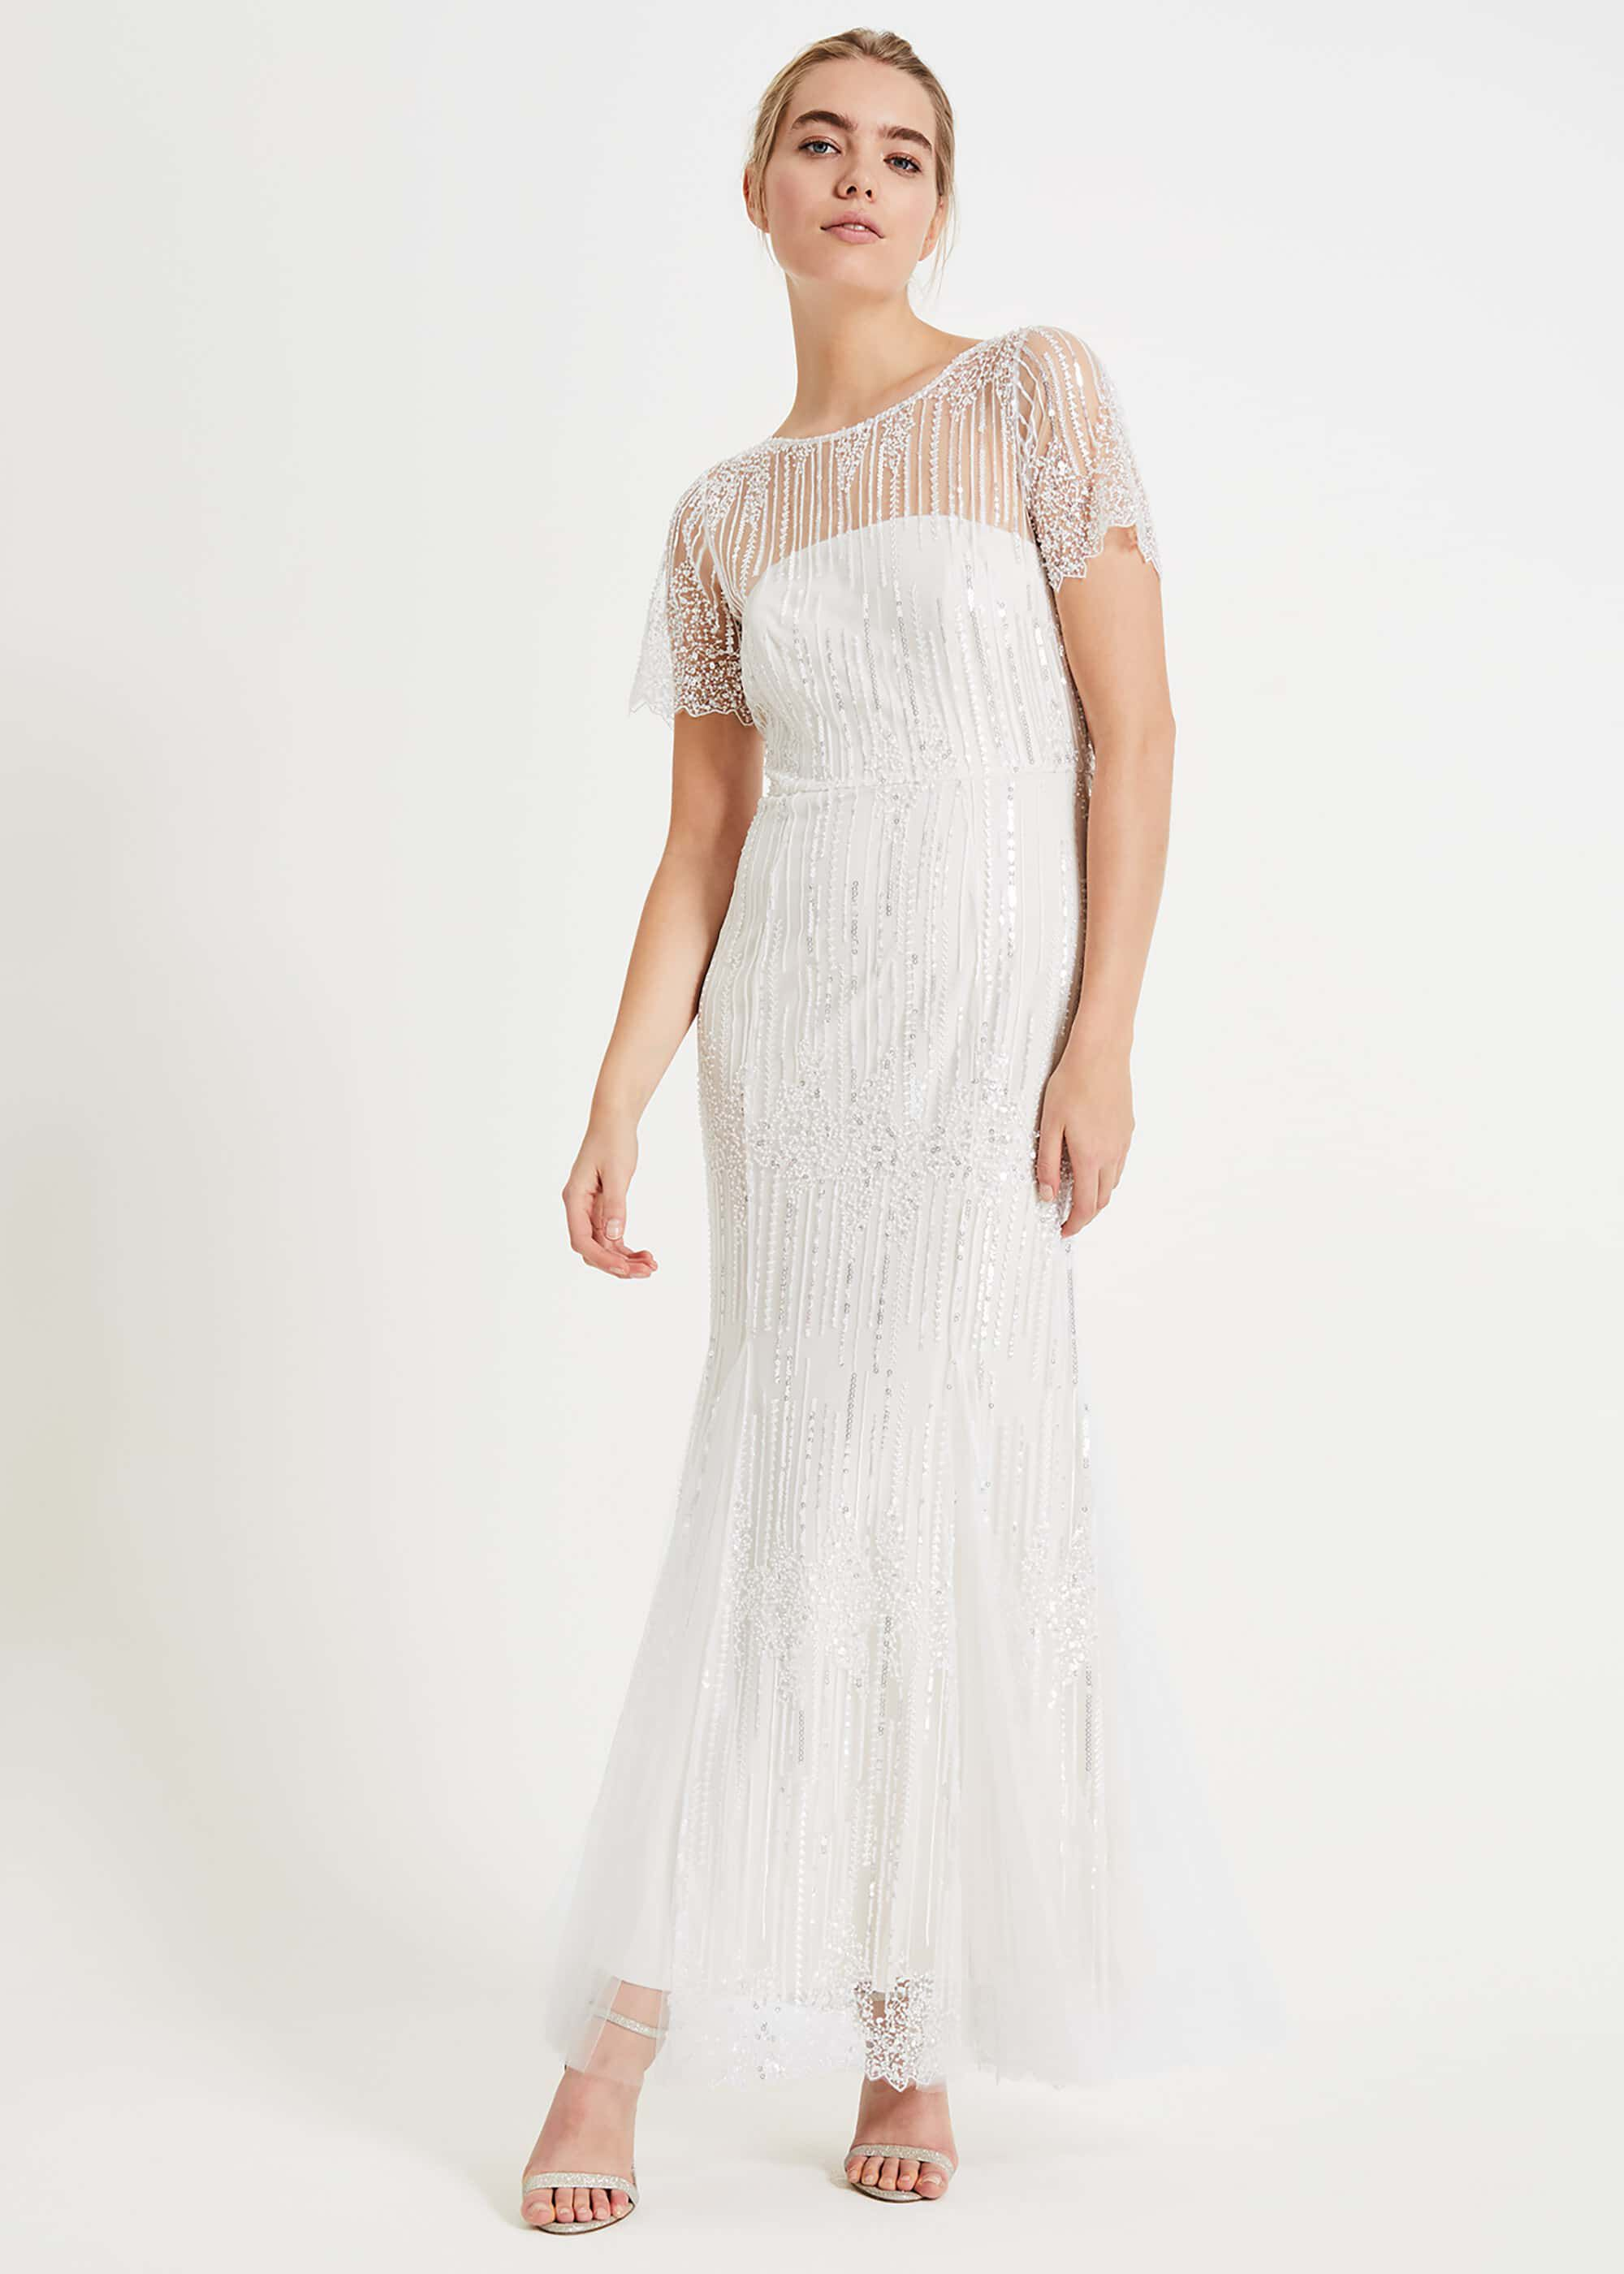 1930s Style Wedding Dresses | Art Deco Wedding Dress Phase Eight Leonora Sequin Embroidered Bridal Dress Neutral Maxi £345.00 AT vintagedancer.com